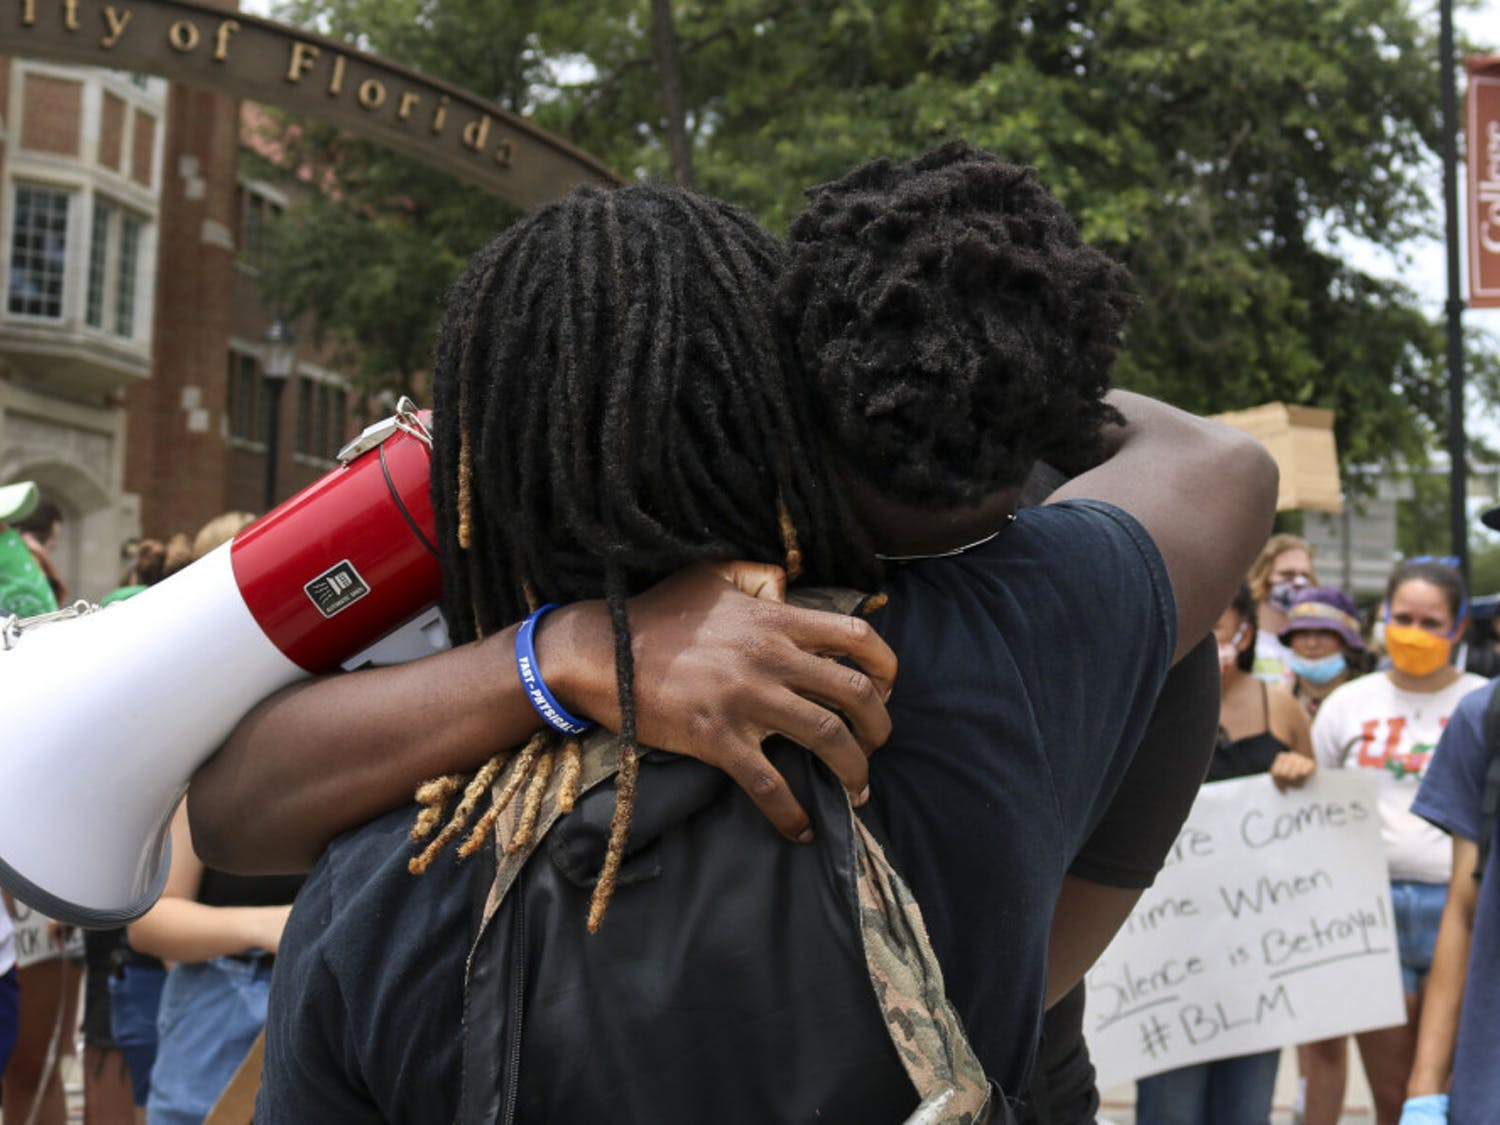 Morris McFadden, a 21-year-old telecommunications and production major and one of the organizers of the protest, hugs Clifford Taylor IV, a 21-year-old graphic design senior, Wednesday during a protest at the intersection of 13th Street and University Avenue against police brutality. The two hugged after Taylor spoke to the crowd.